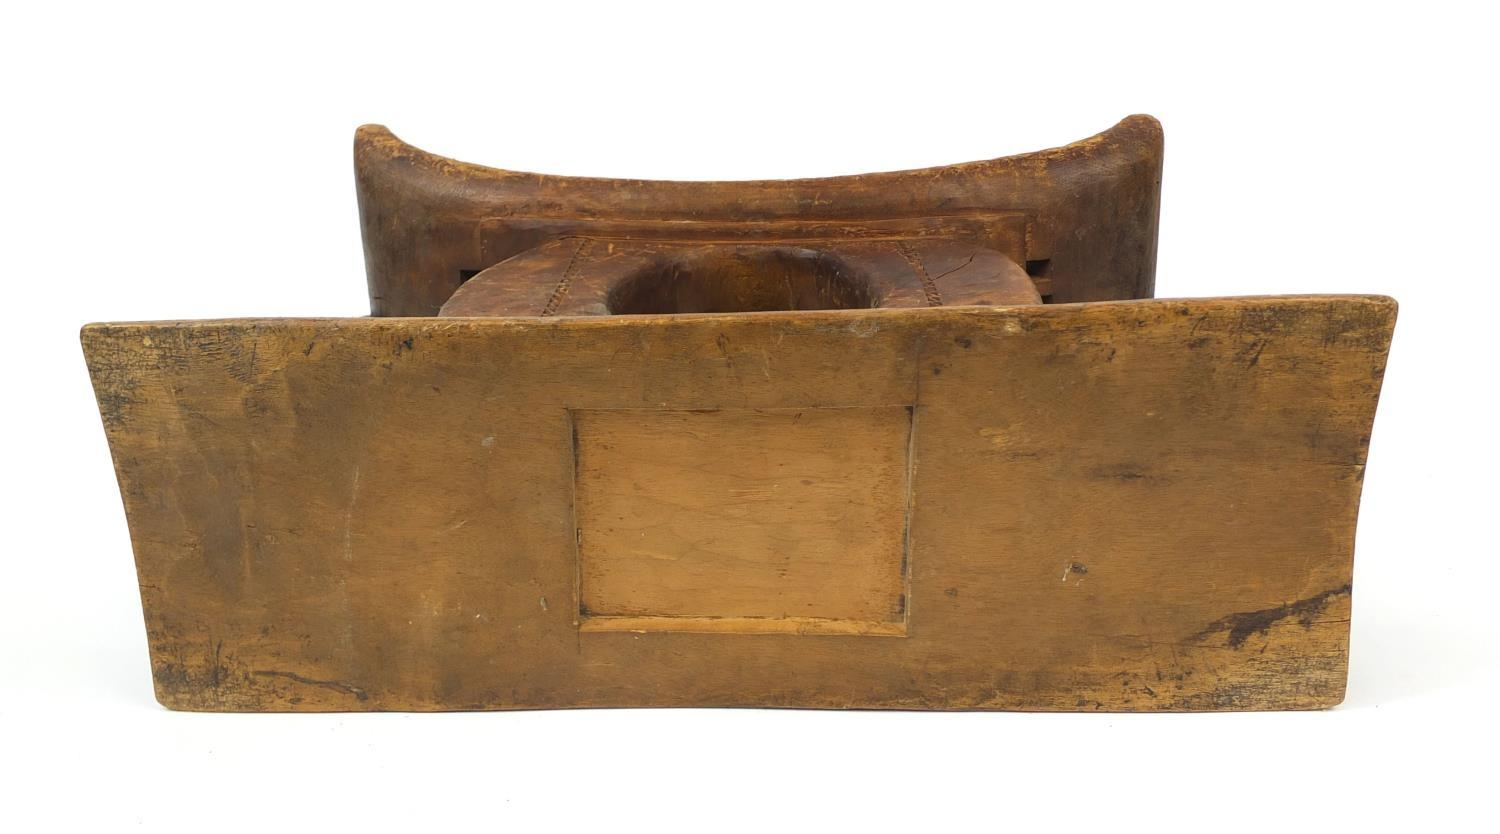 Lot 325 - Tribal interest carved wooden African headrest, 39cm x 26cm x 22cm : For Further Condition Reports